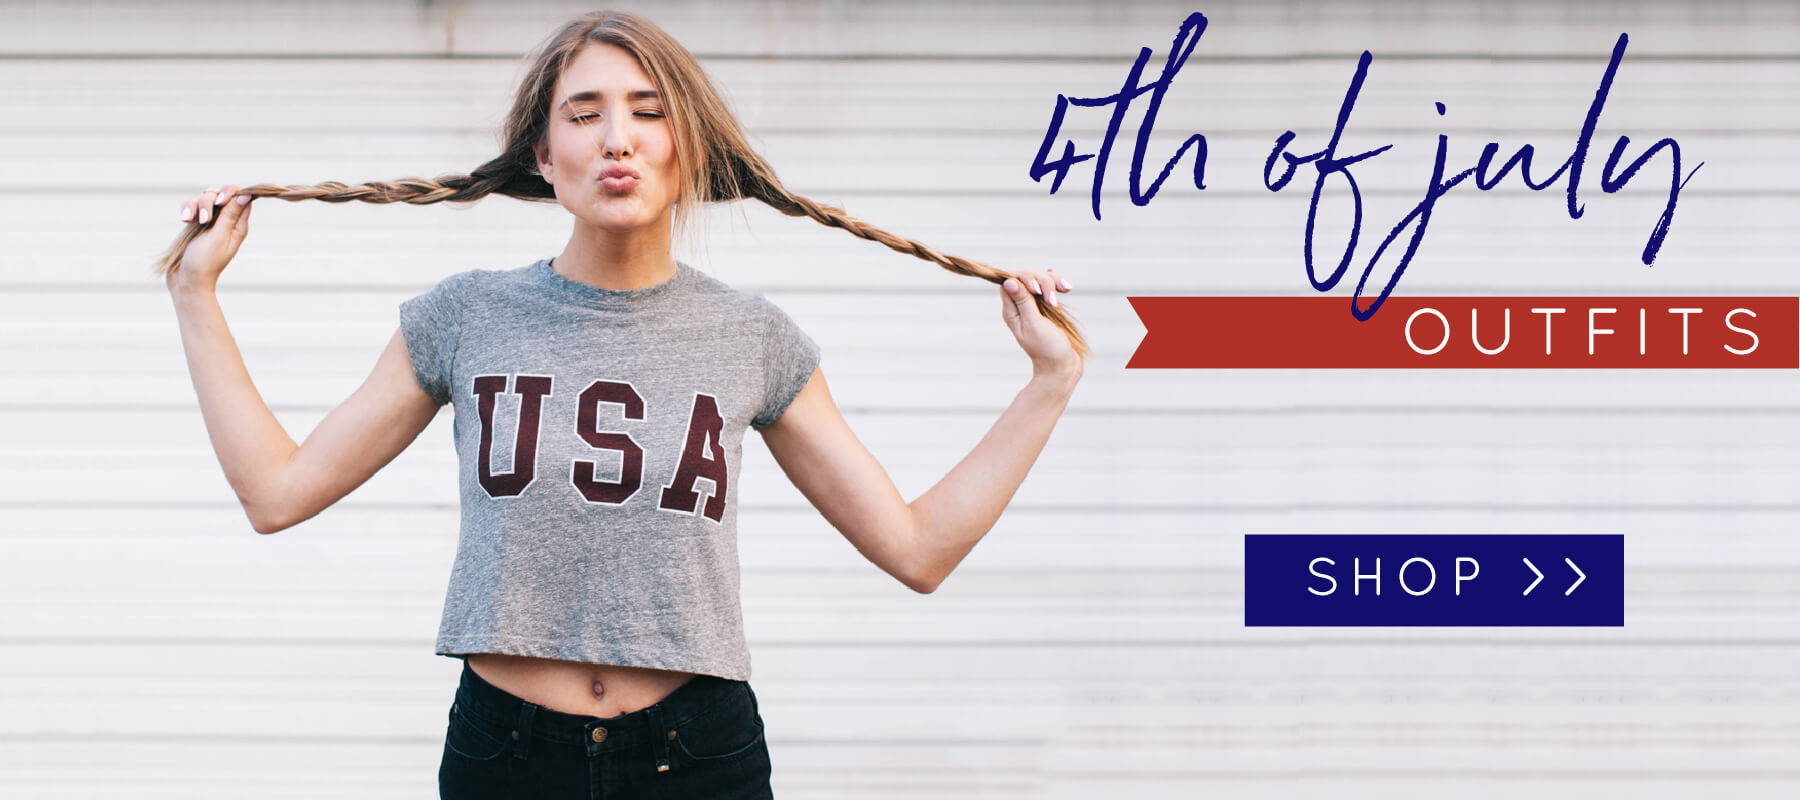 shop 4th of july outfits from bella ella boutique